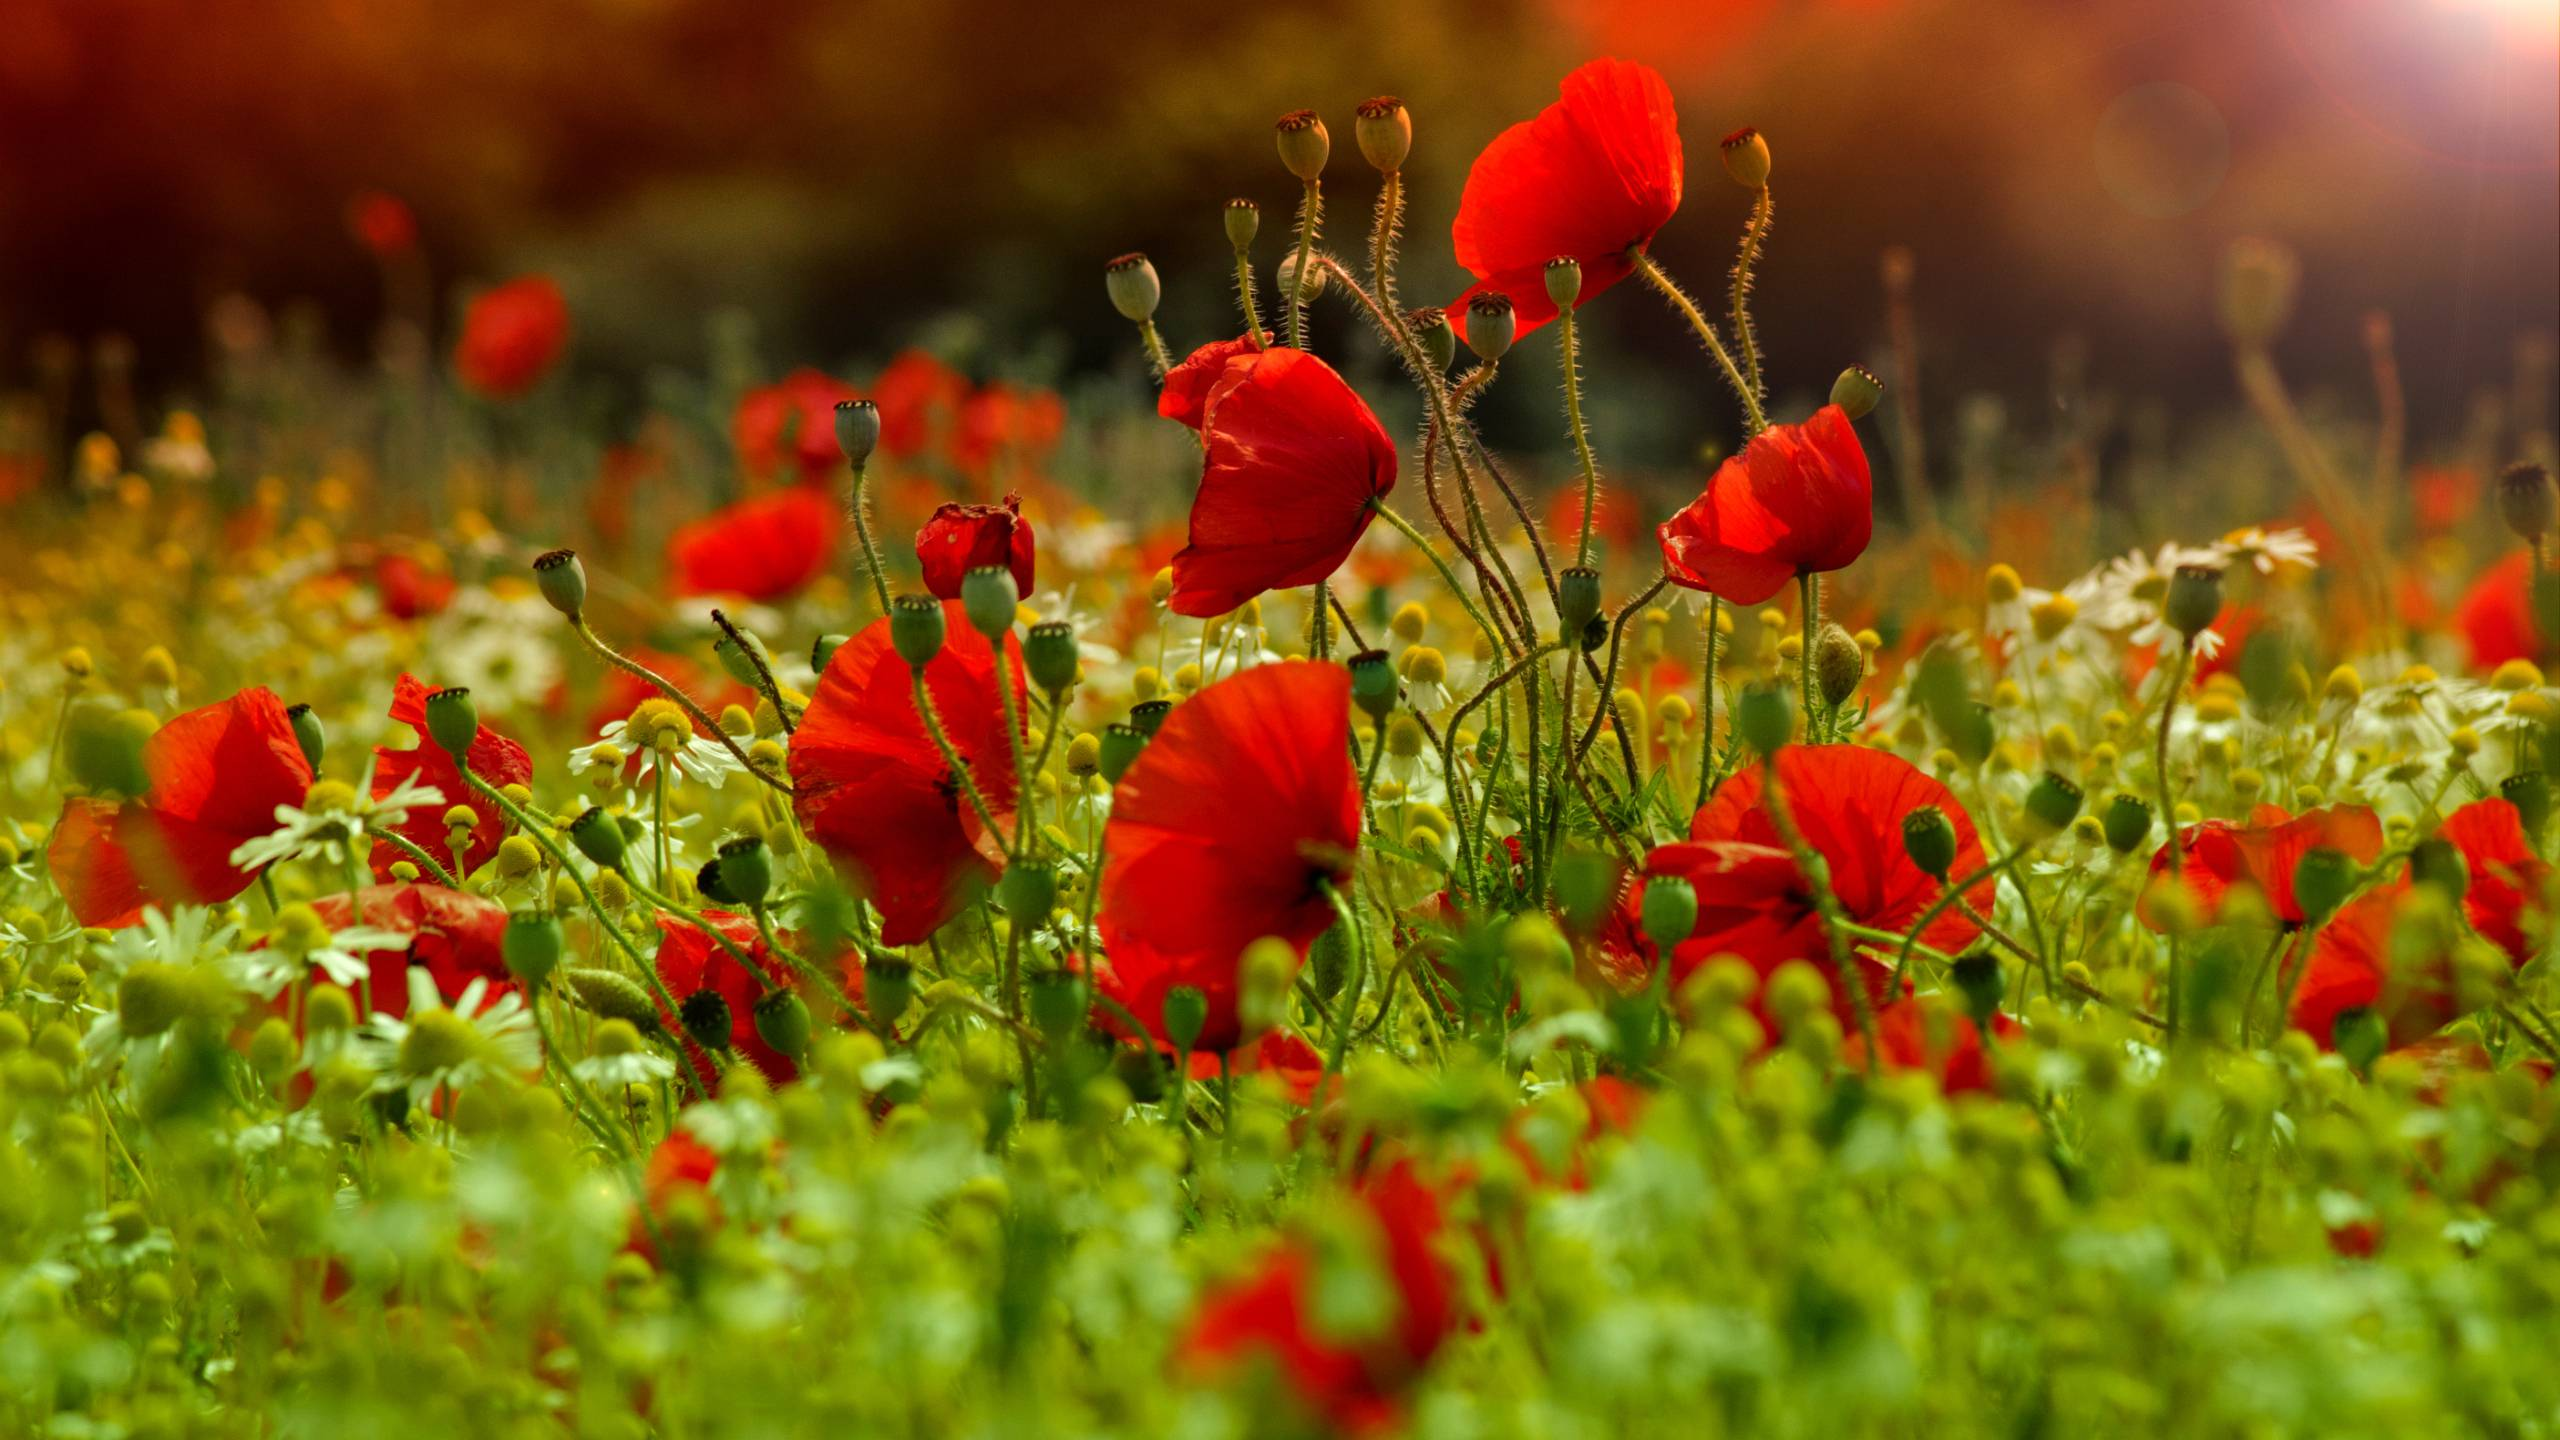 Poppies wallpapers wallpaper cave - Poppy wallpaper ...